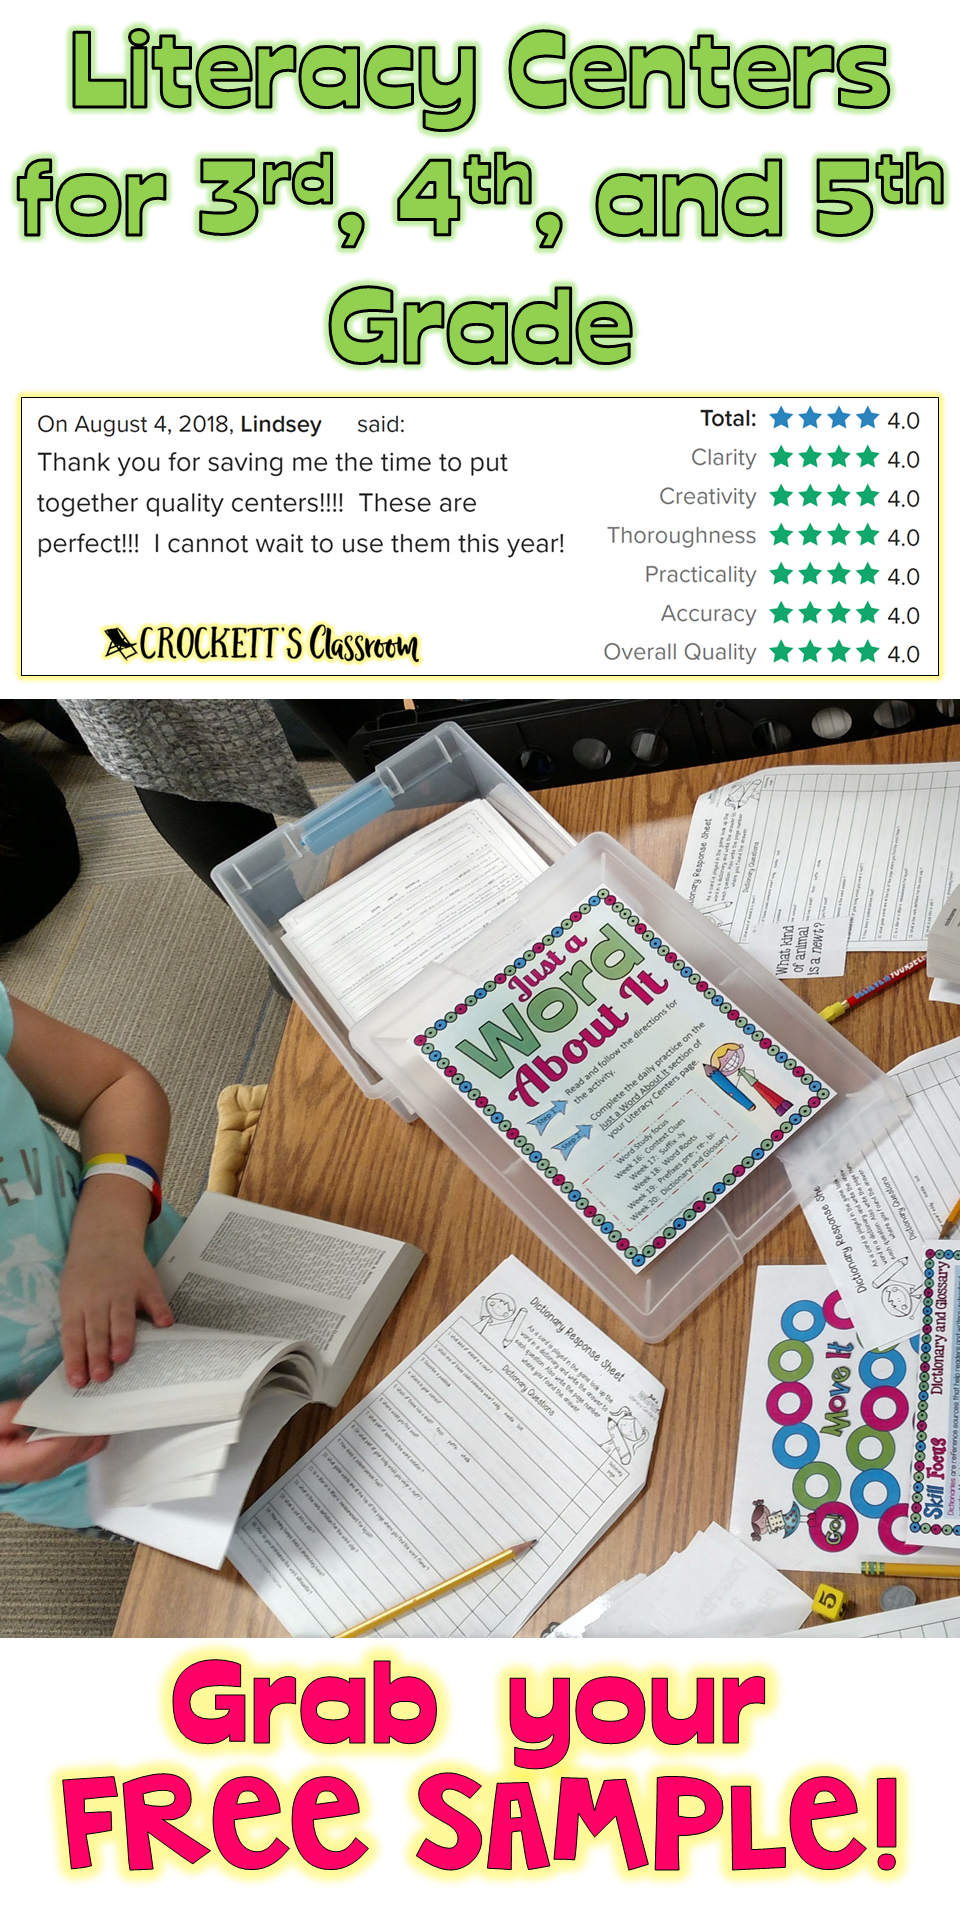 medium resolution of You've got to check these out! Literacy centers created with 3rd